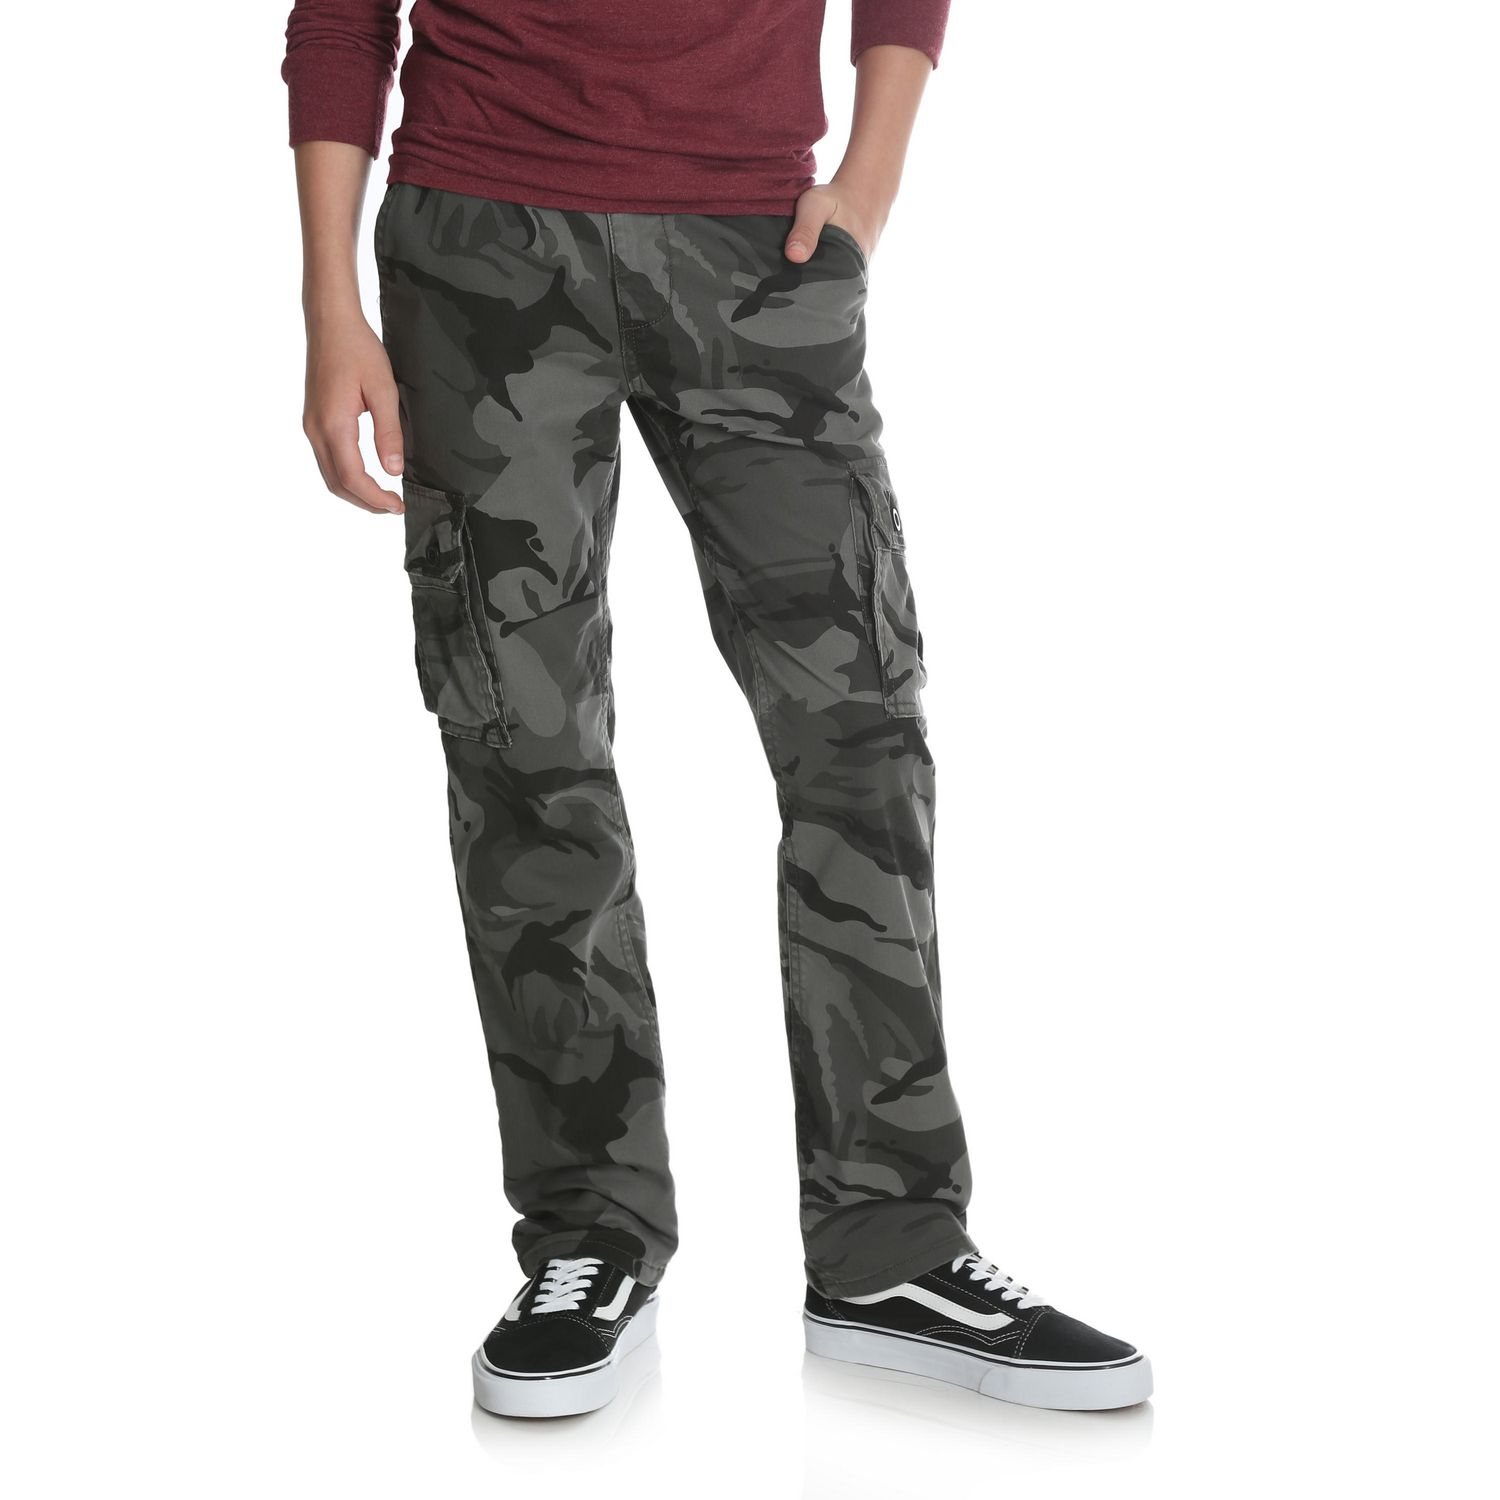 edf89797 Wrangler Boys' Slim Straight Stretch Cargo Pant - image 1 of 6 zoomed image